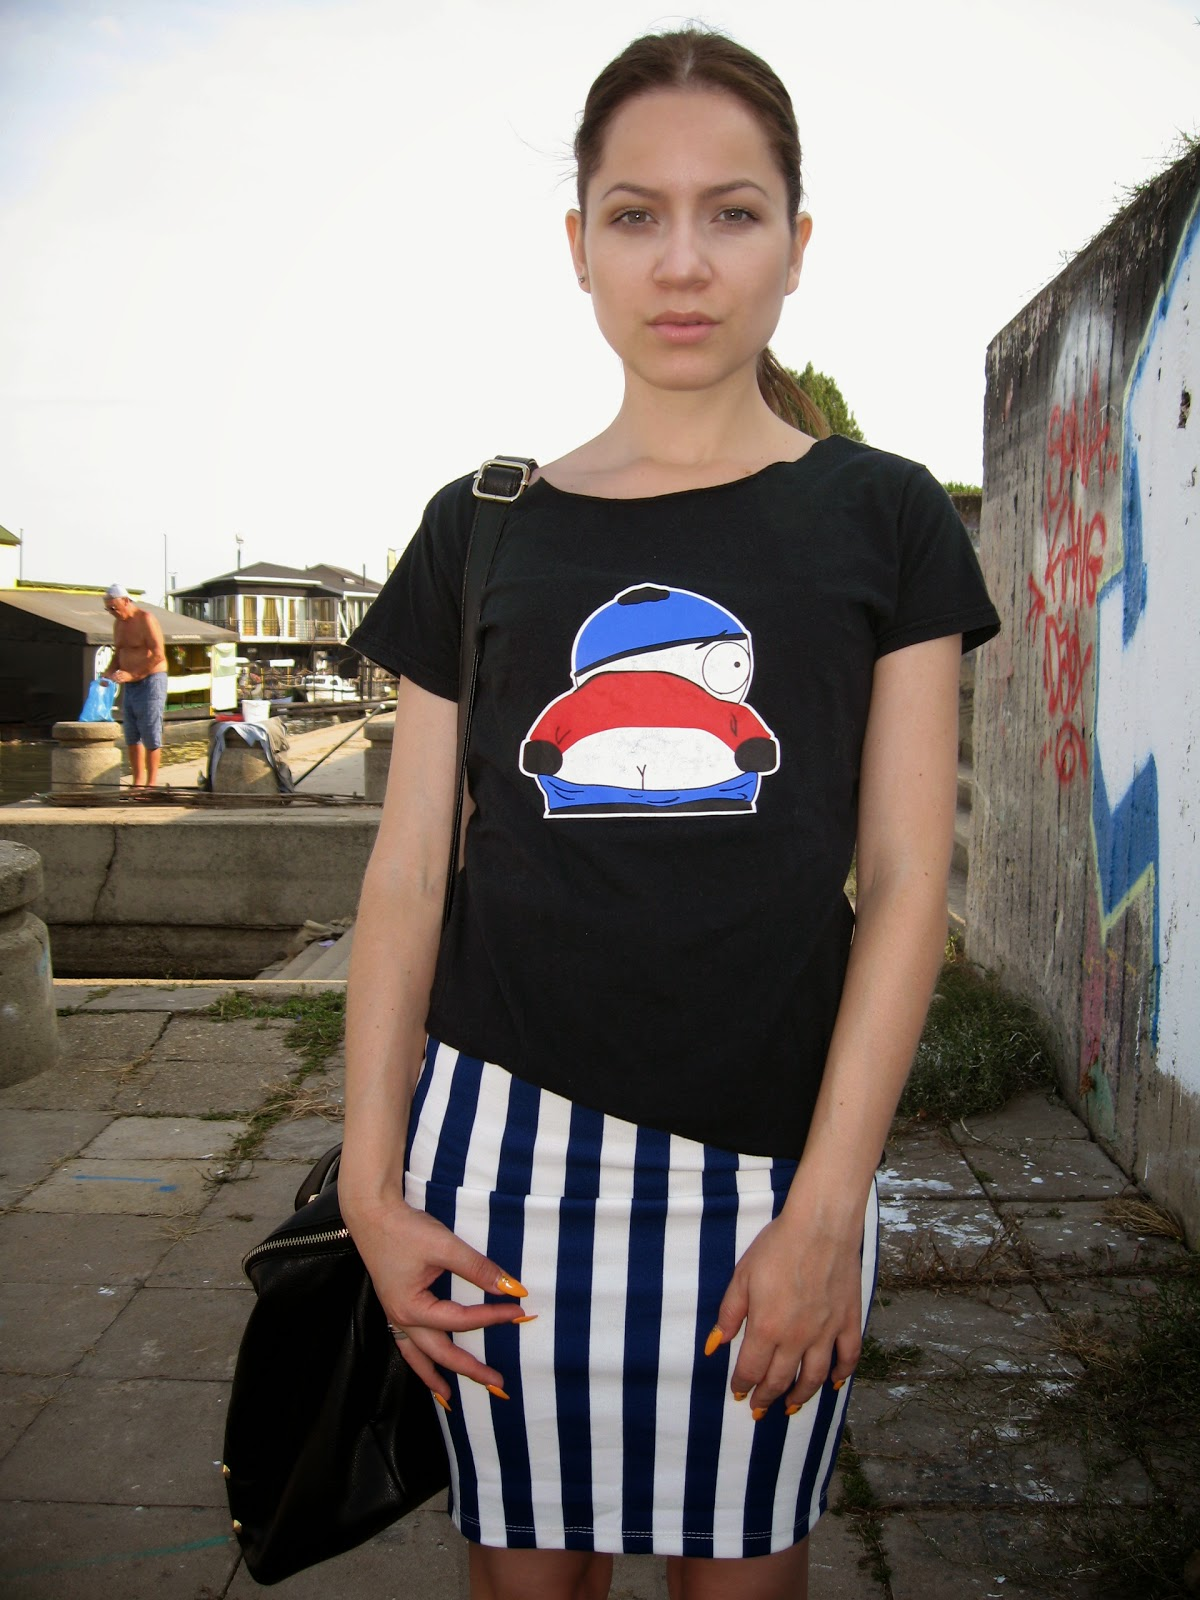 cartman print t shirt tee top, blue and white striped pencil skirt, deichmann white sneakers, styling white converse sneakers, carpisa black studded bag, sleek pony tail, back to school look,